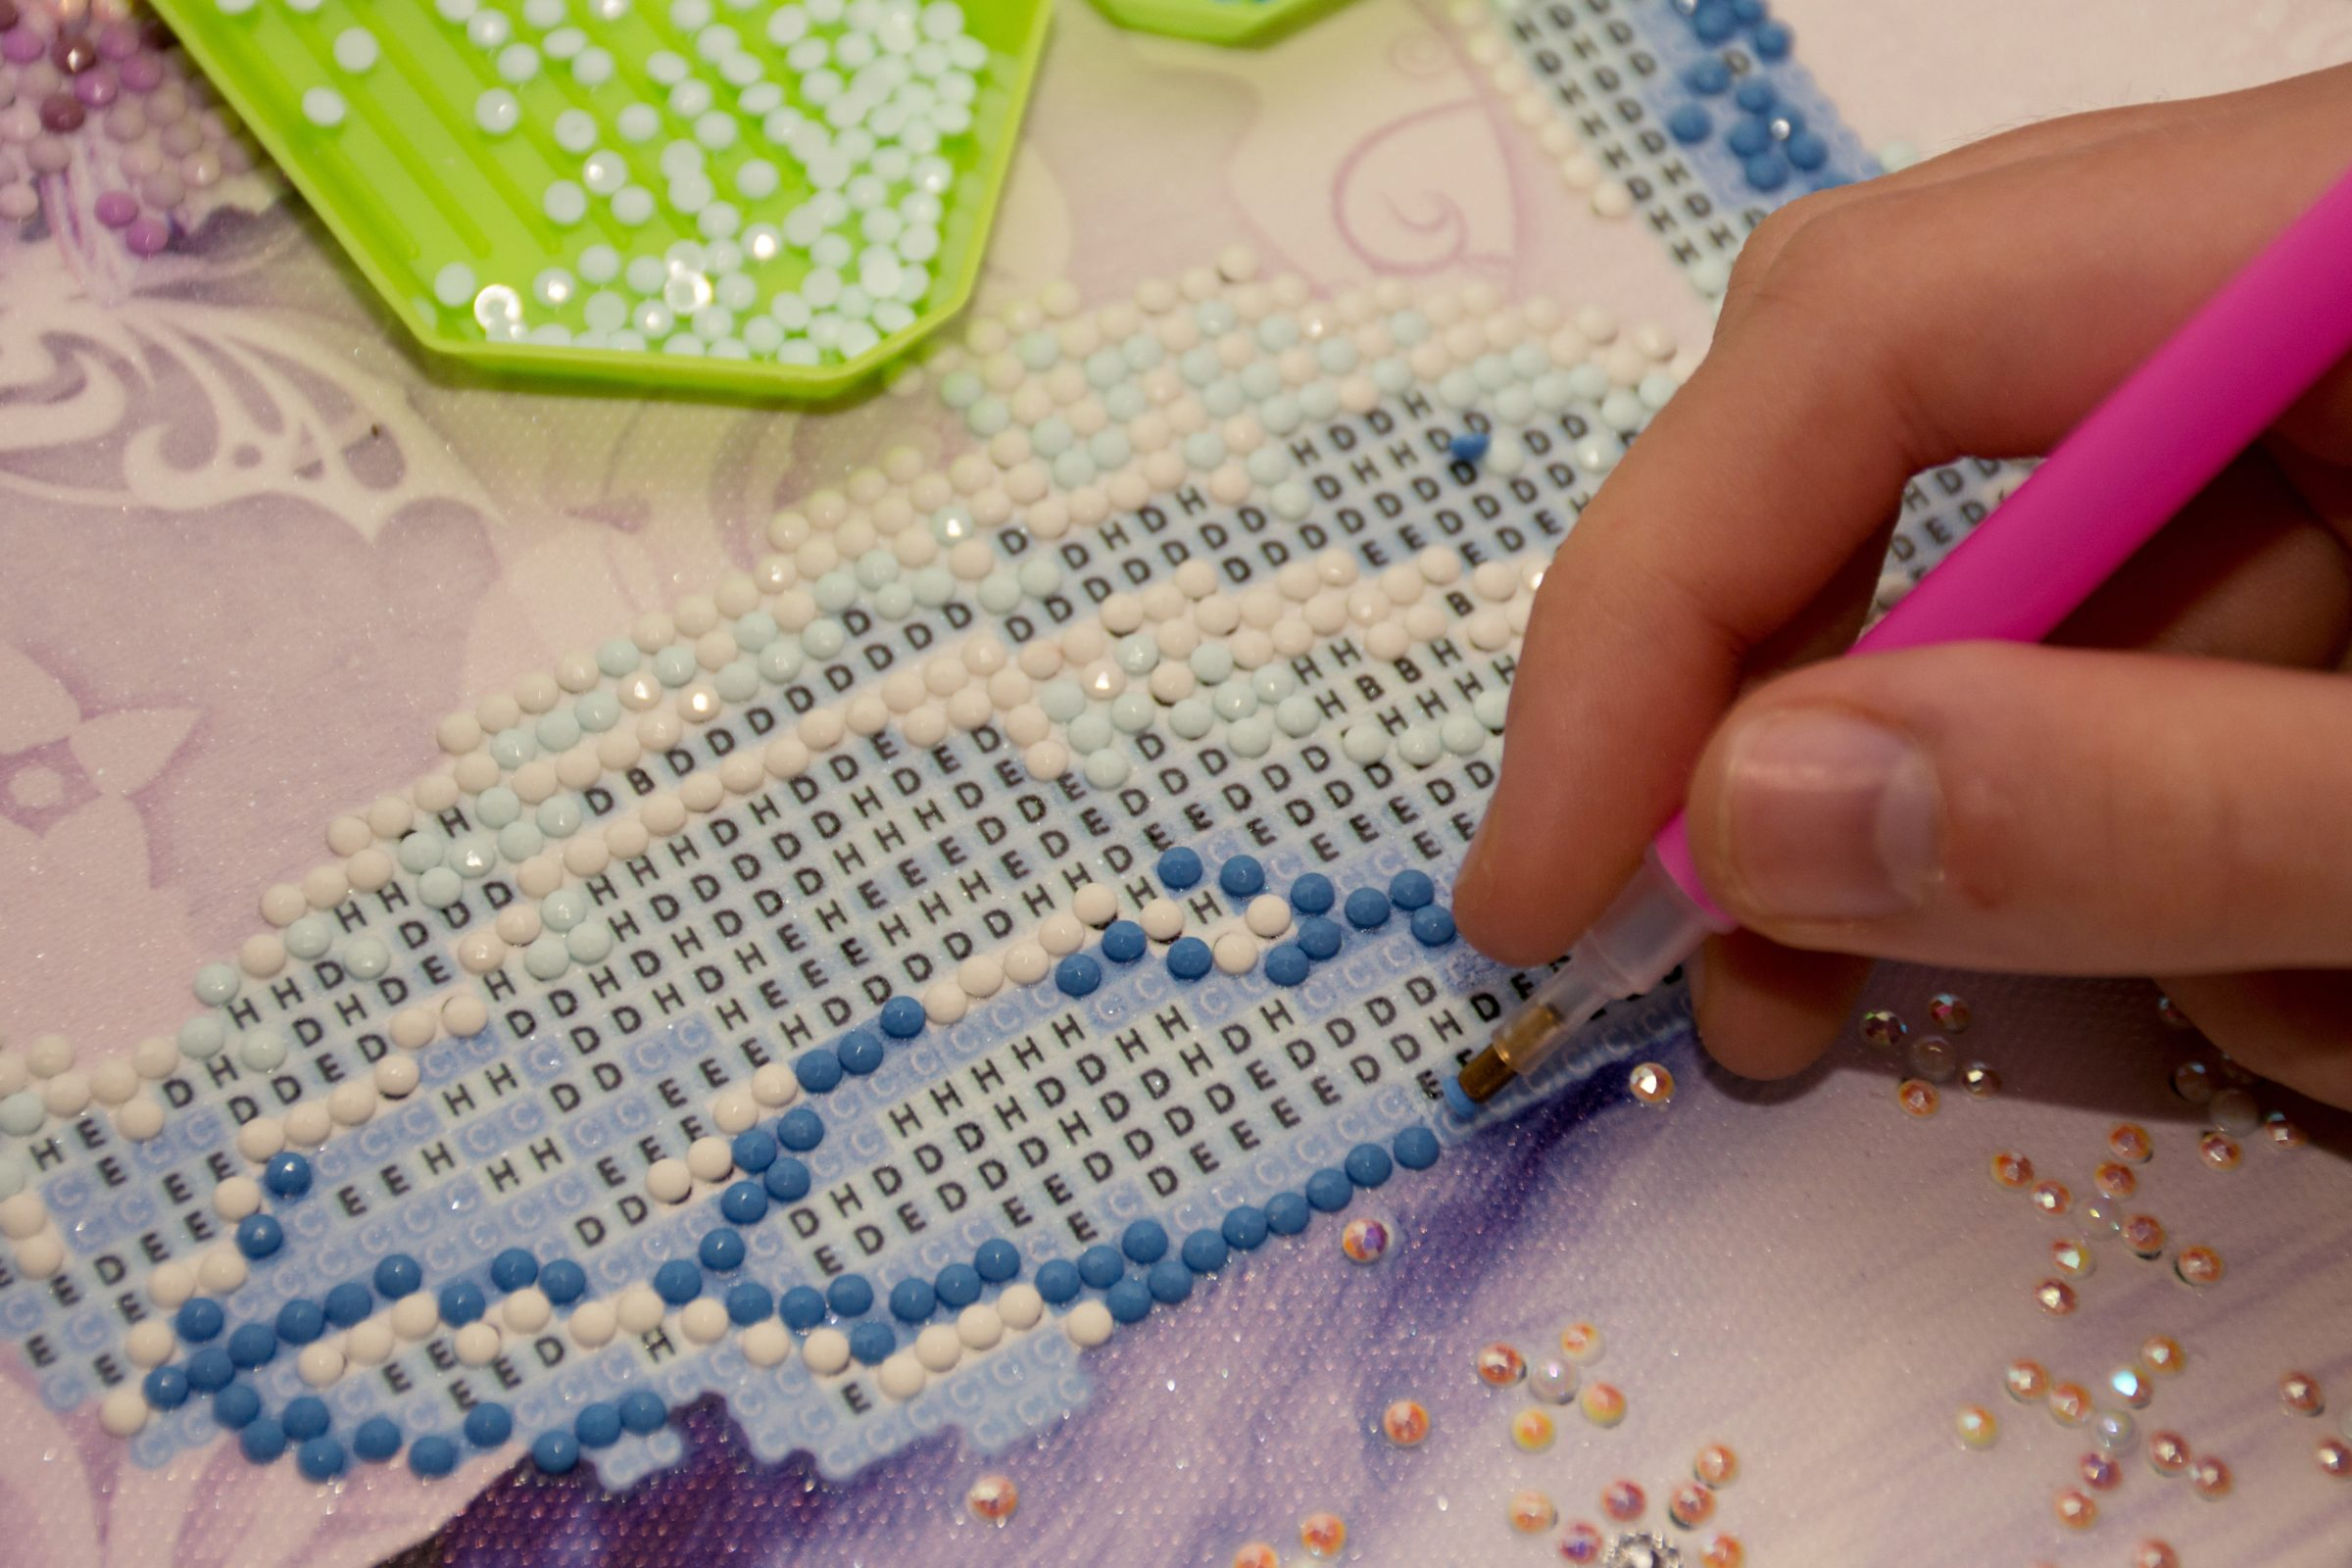 diamond painting embroidery craft in progress 9GYU6BX